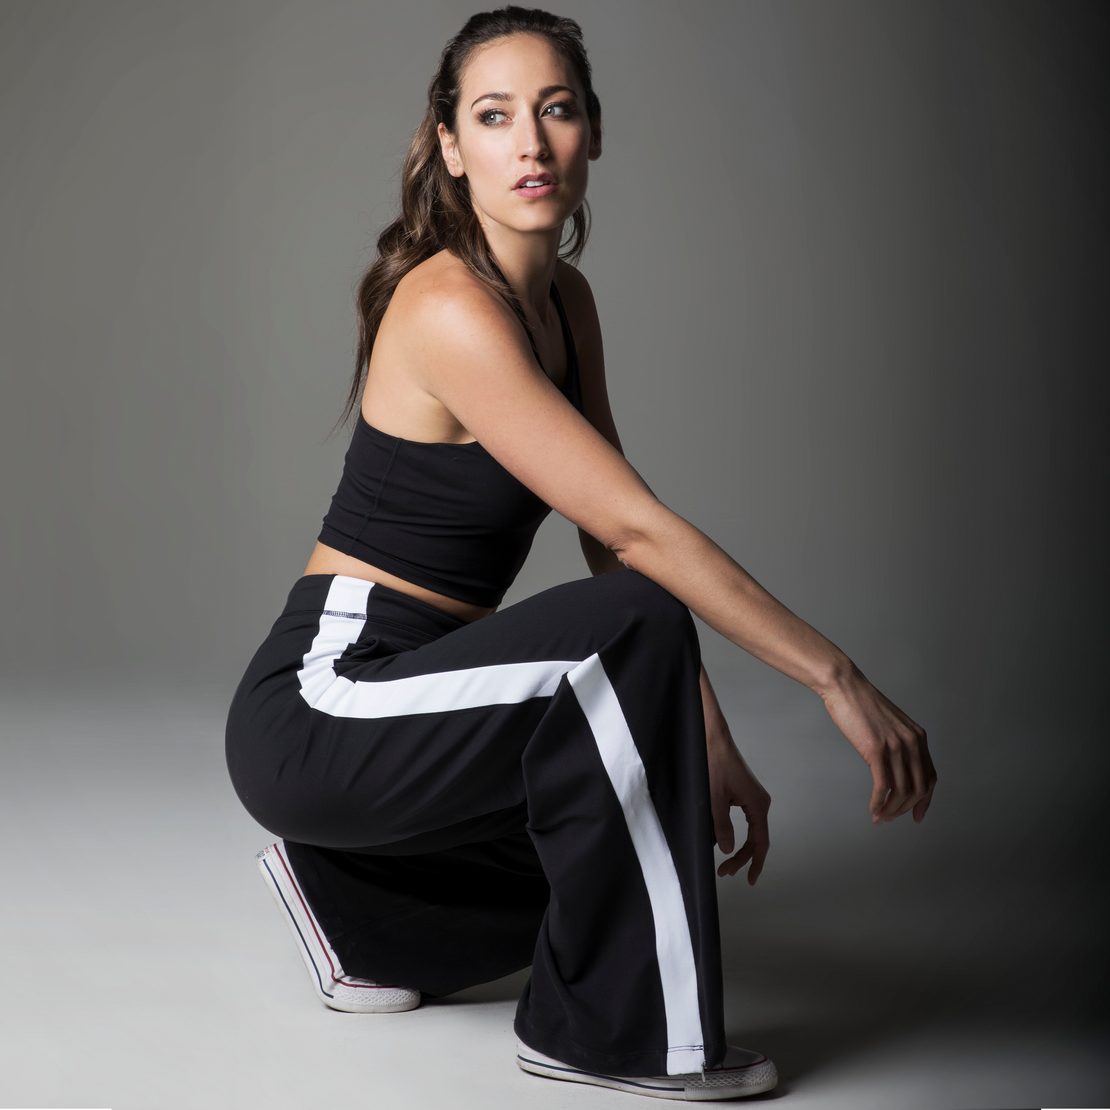 Wide Leg Yoga Pants are In Style